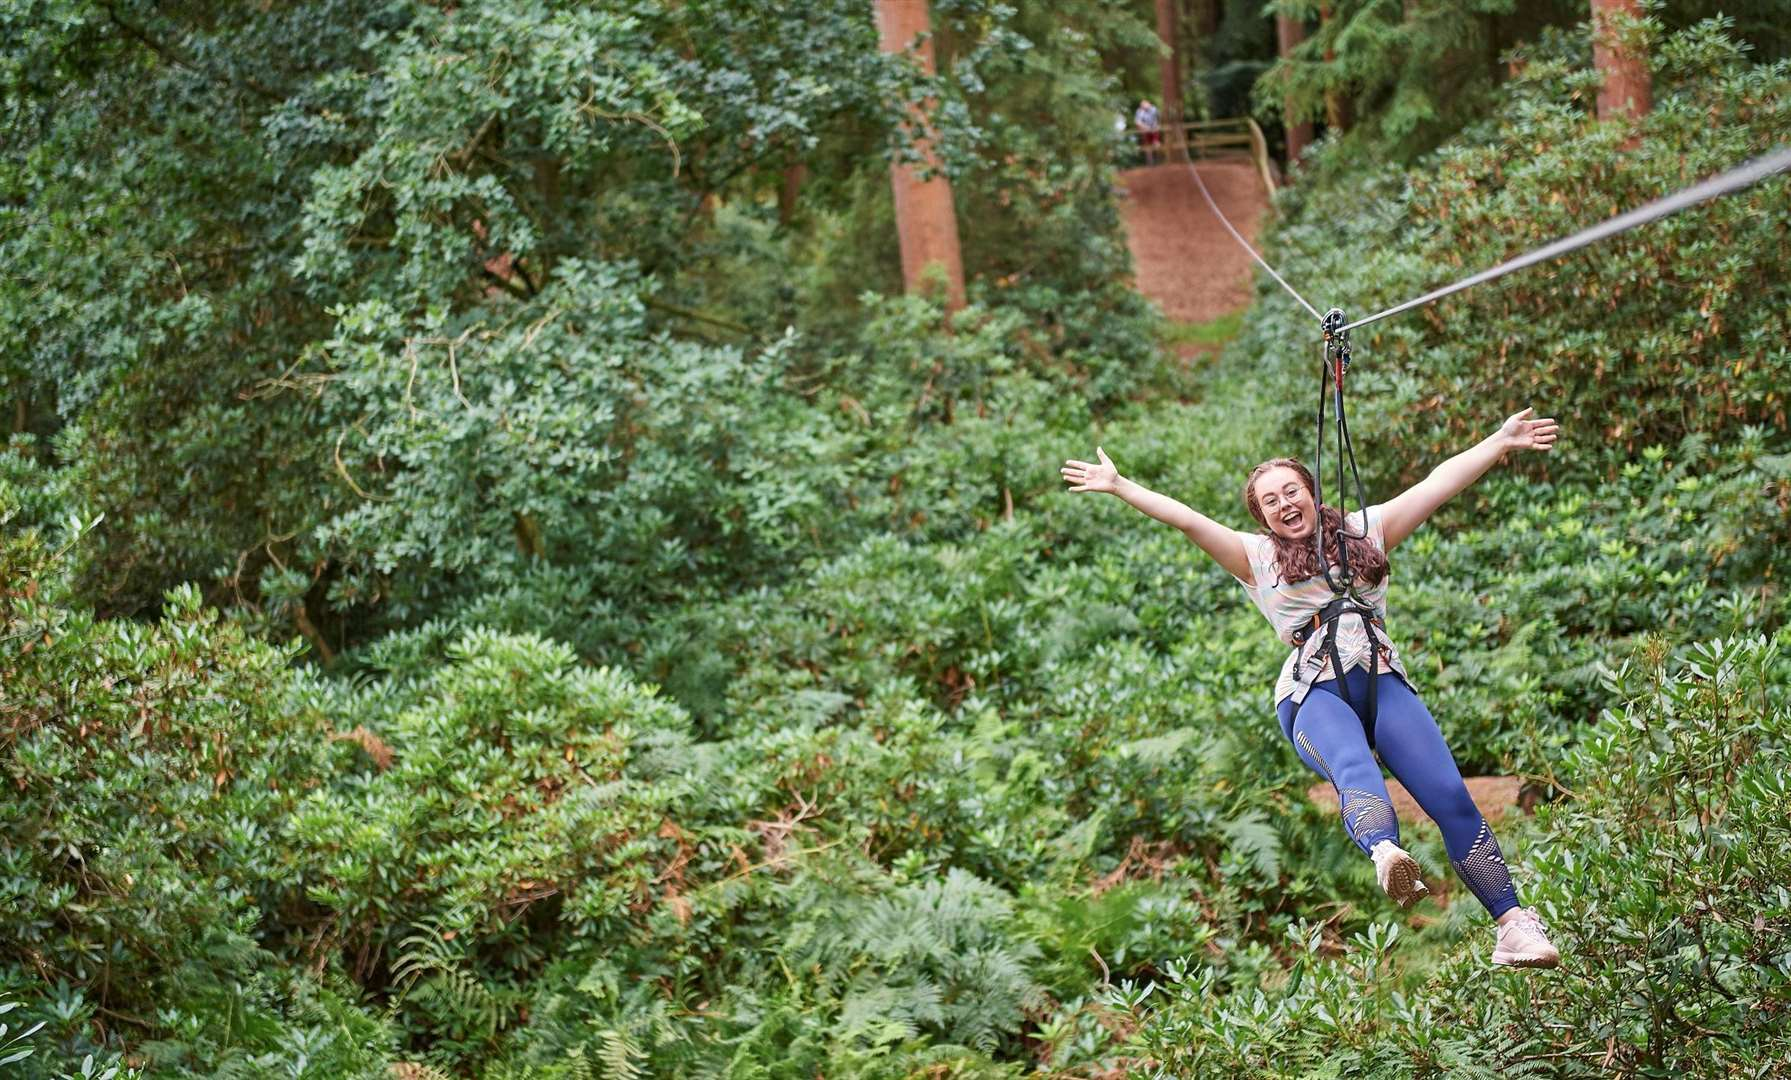 There's treetop adventure to be had now